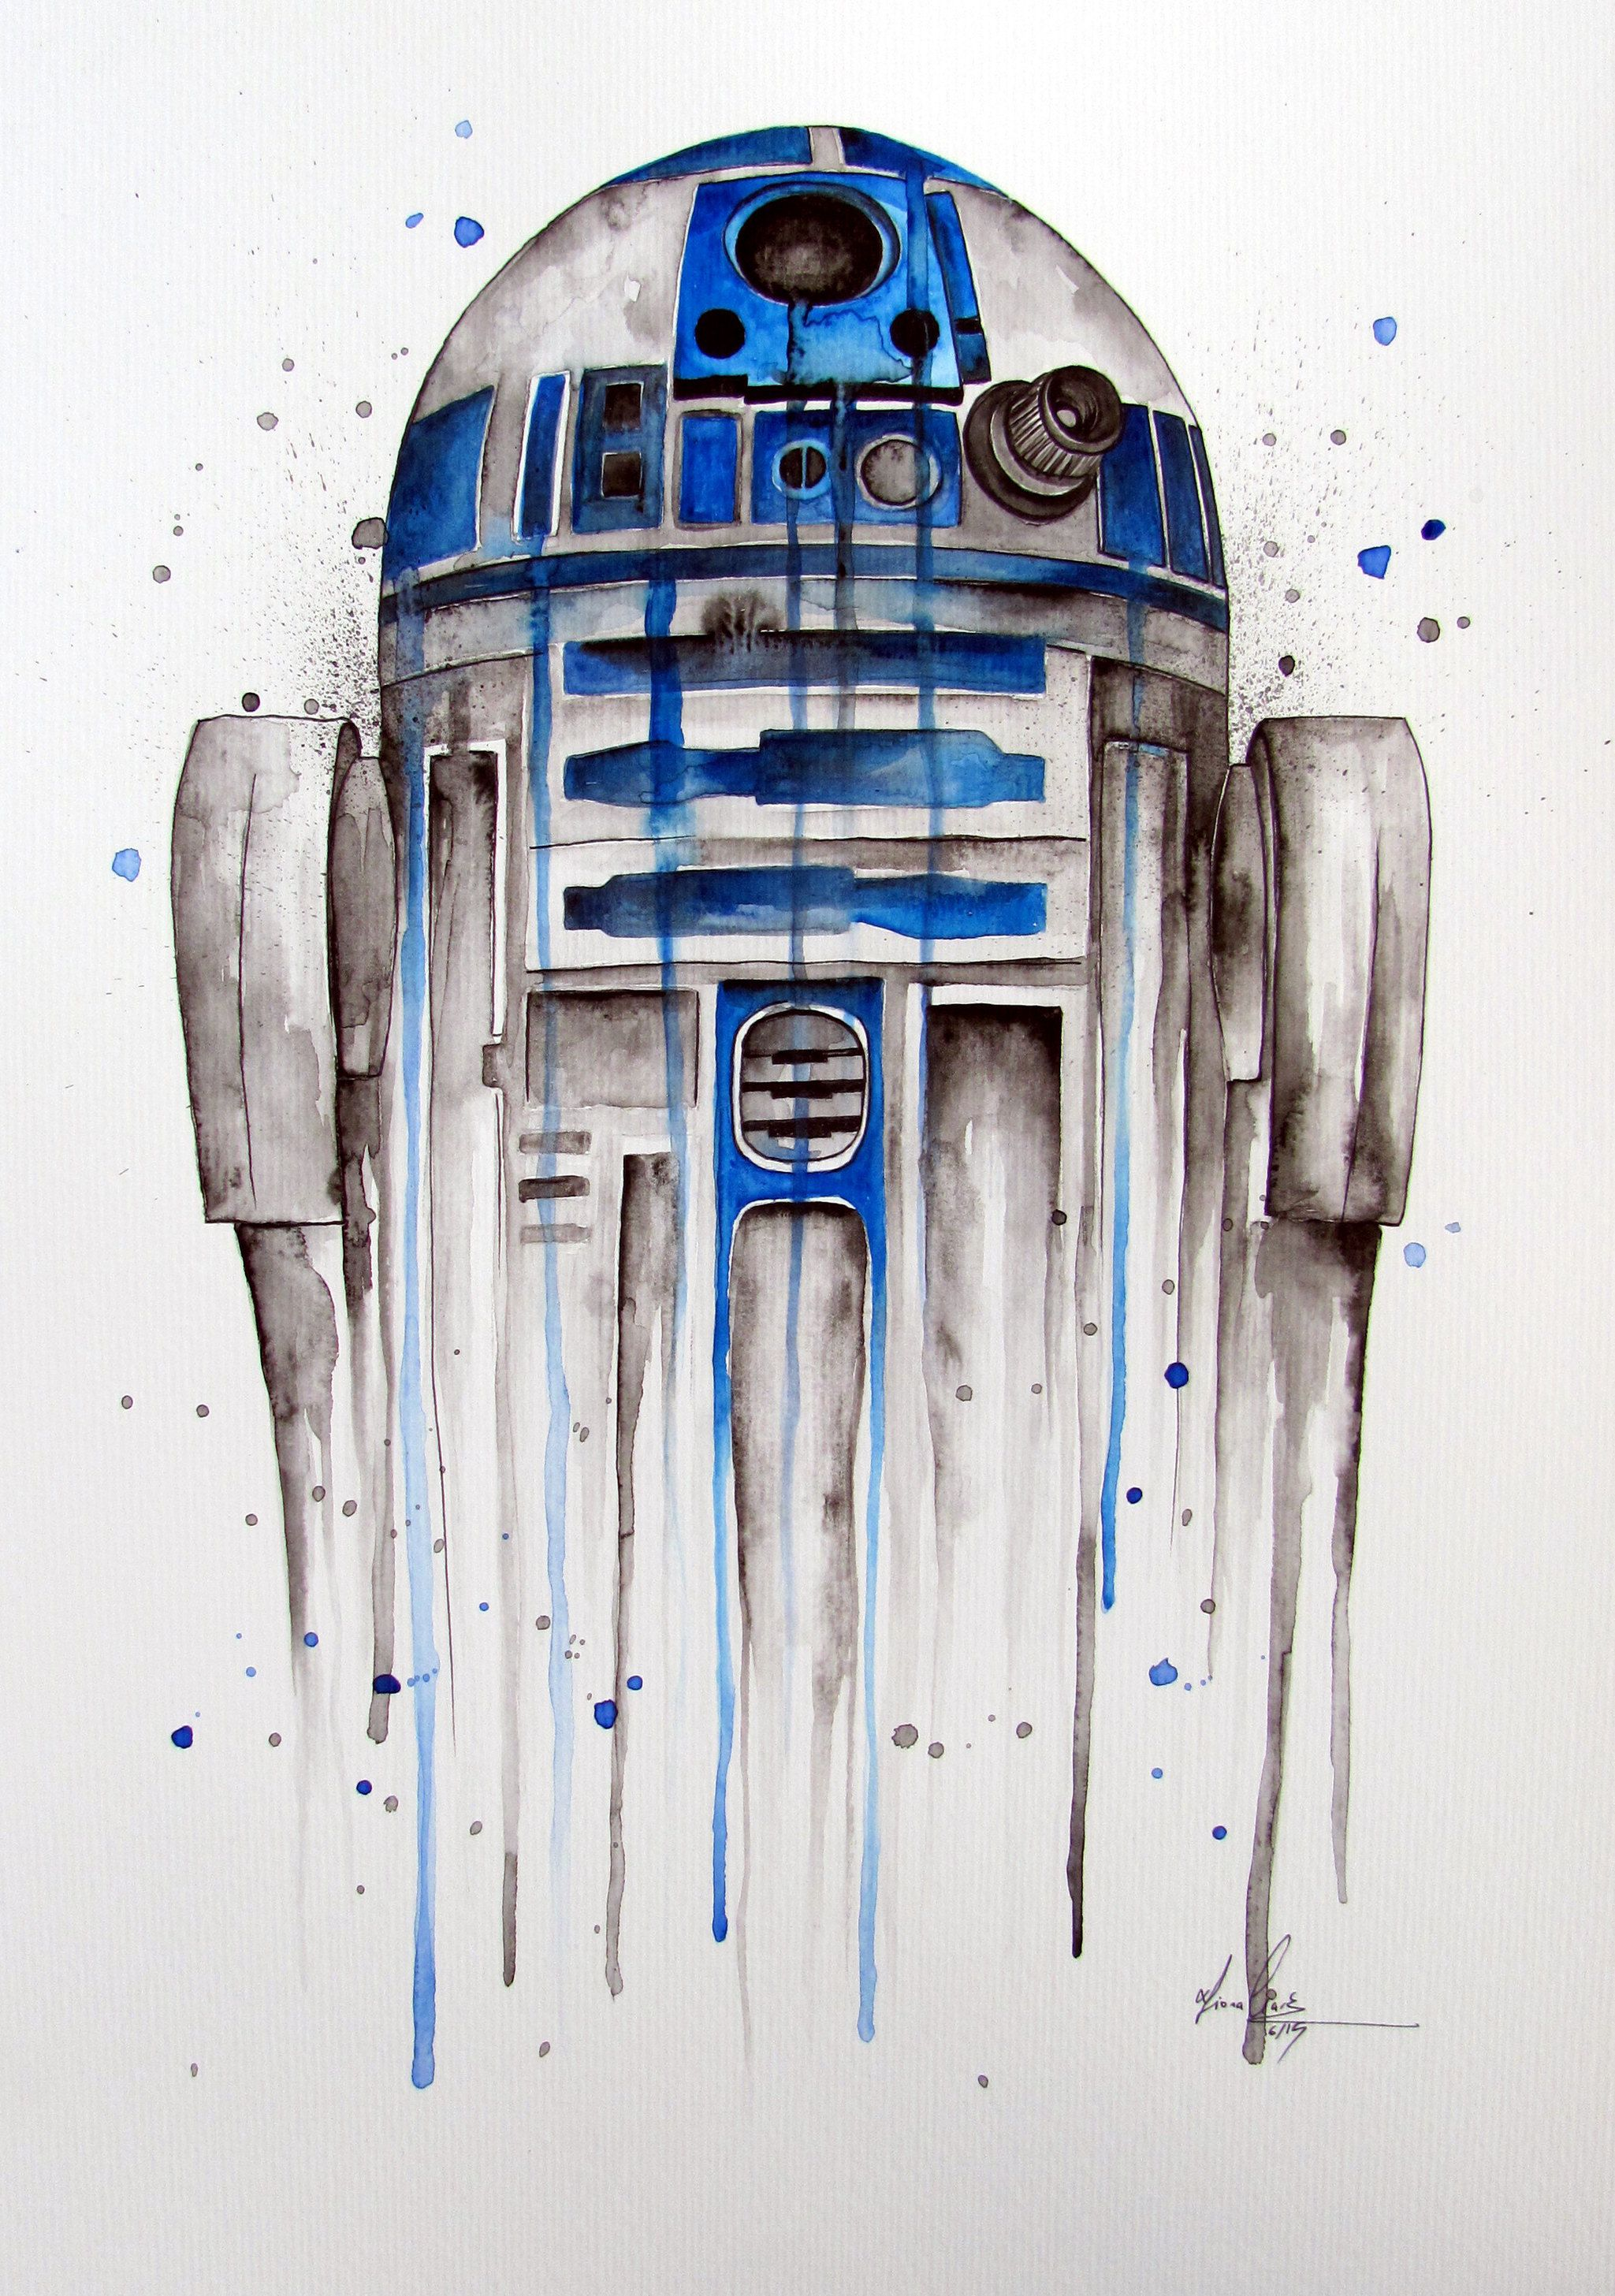 R2D2_WATERCOLOUR.jpg Click image to close this window